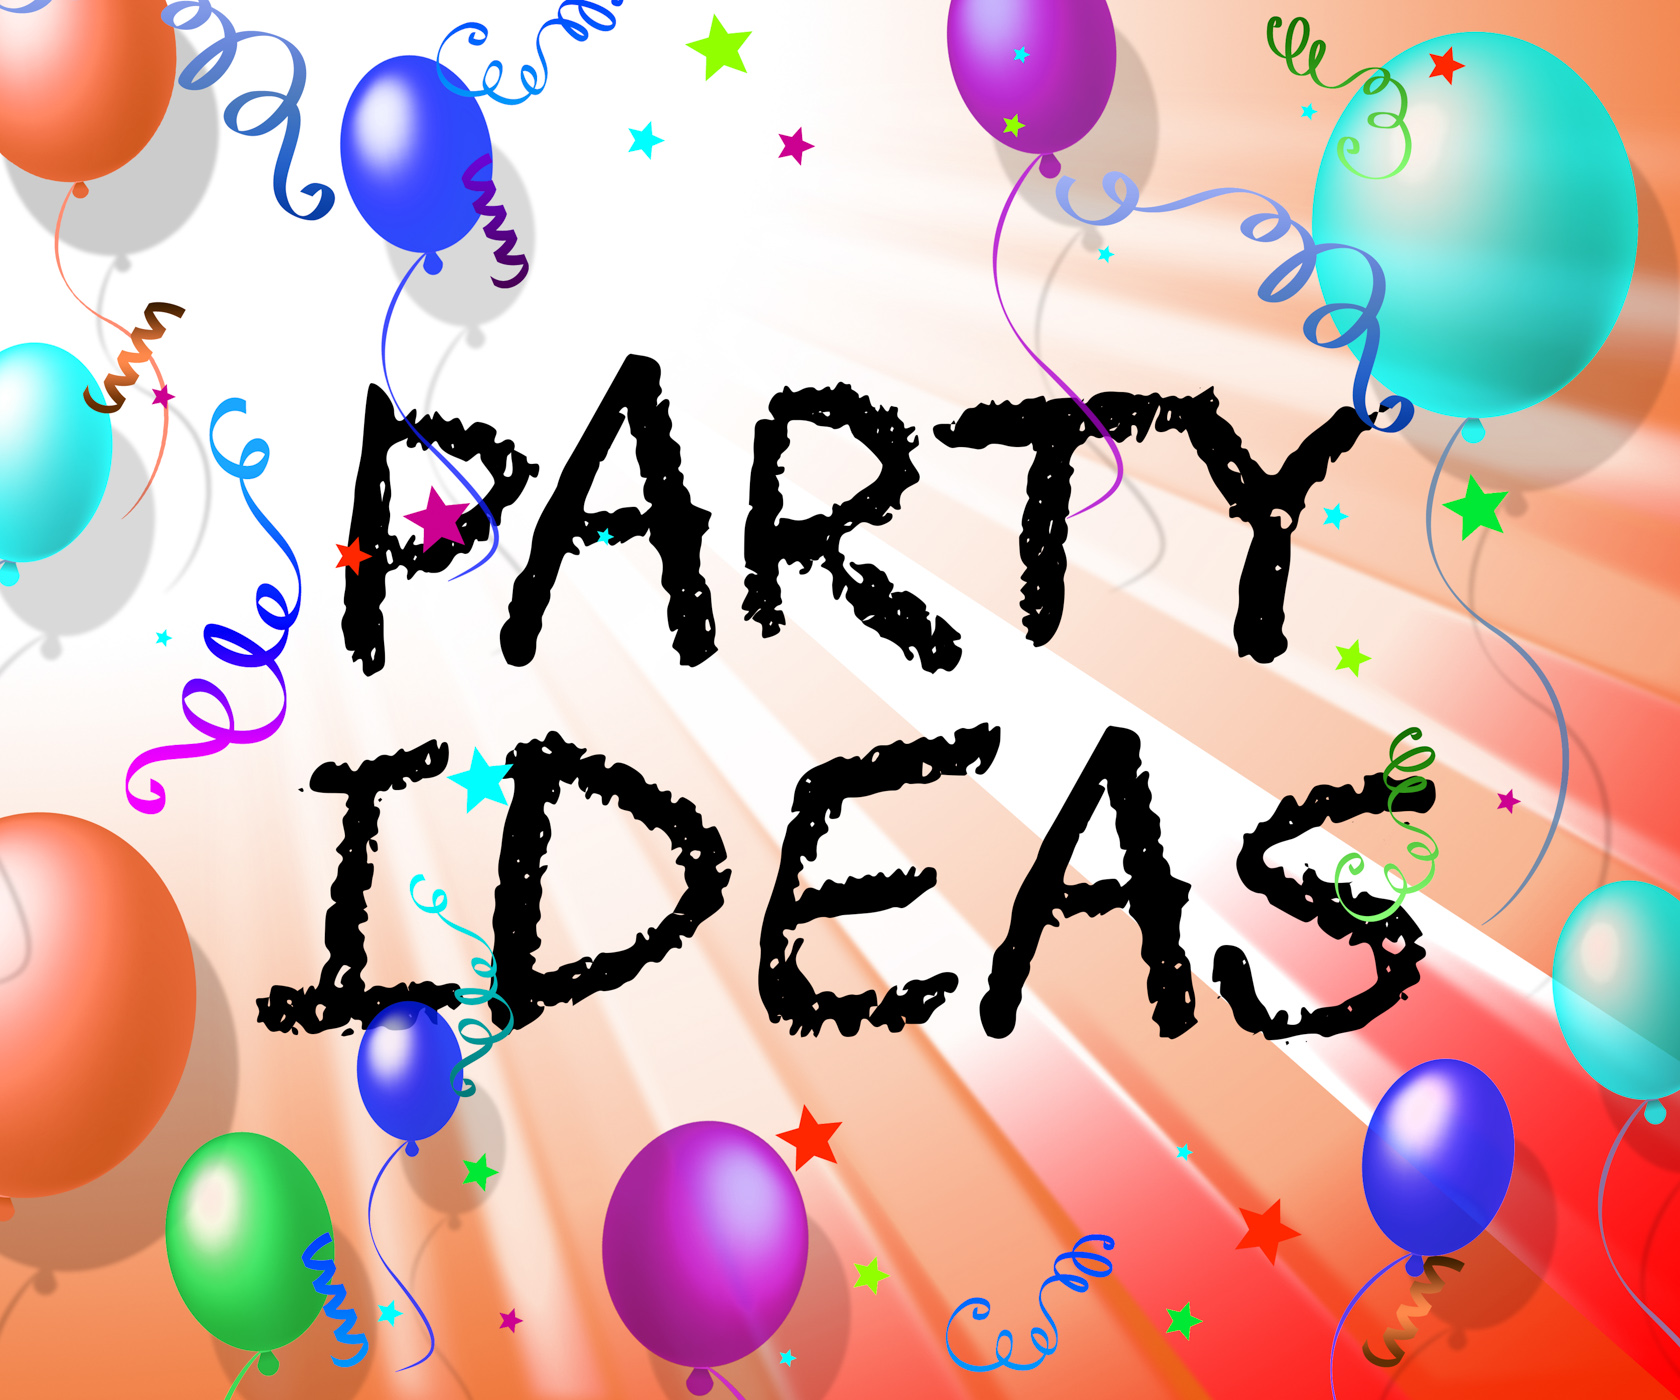 Party ideas represents consider invention and contemplations photo